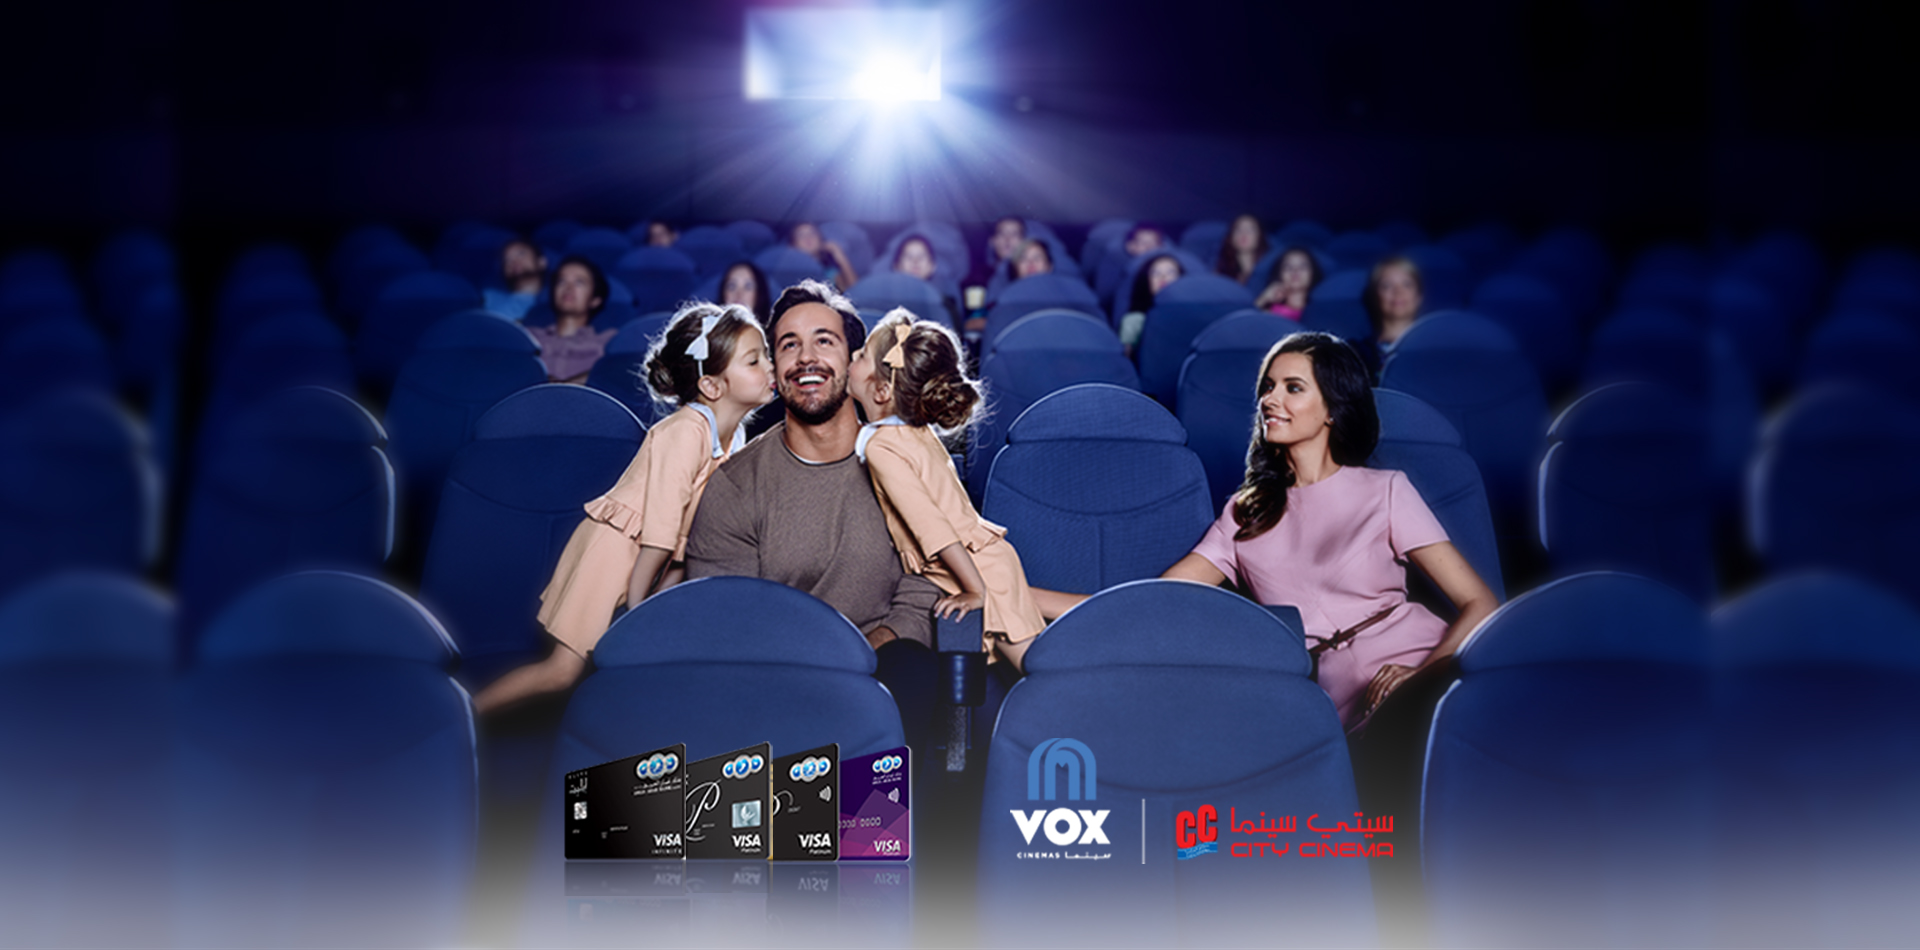 VOX Cinema Offer